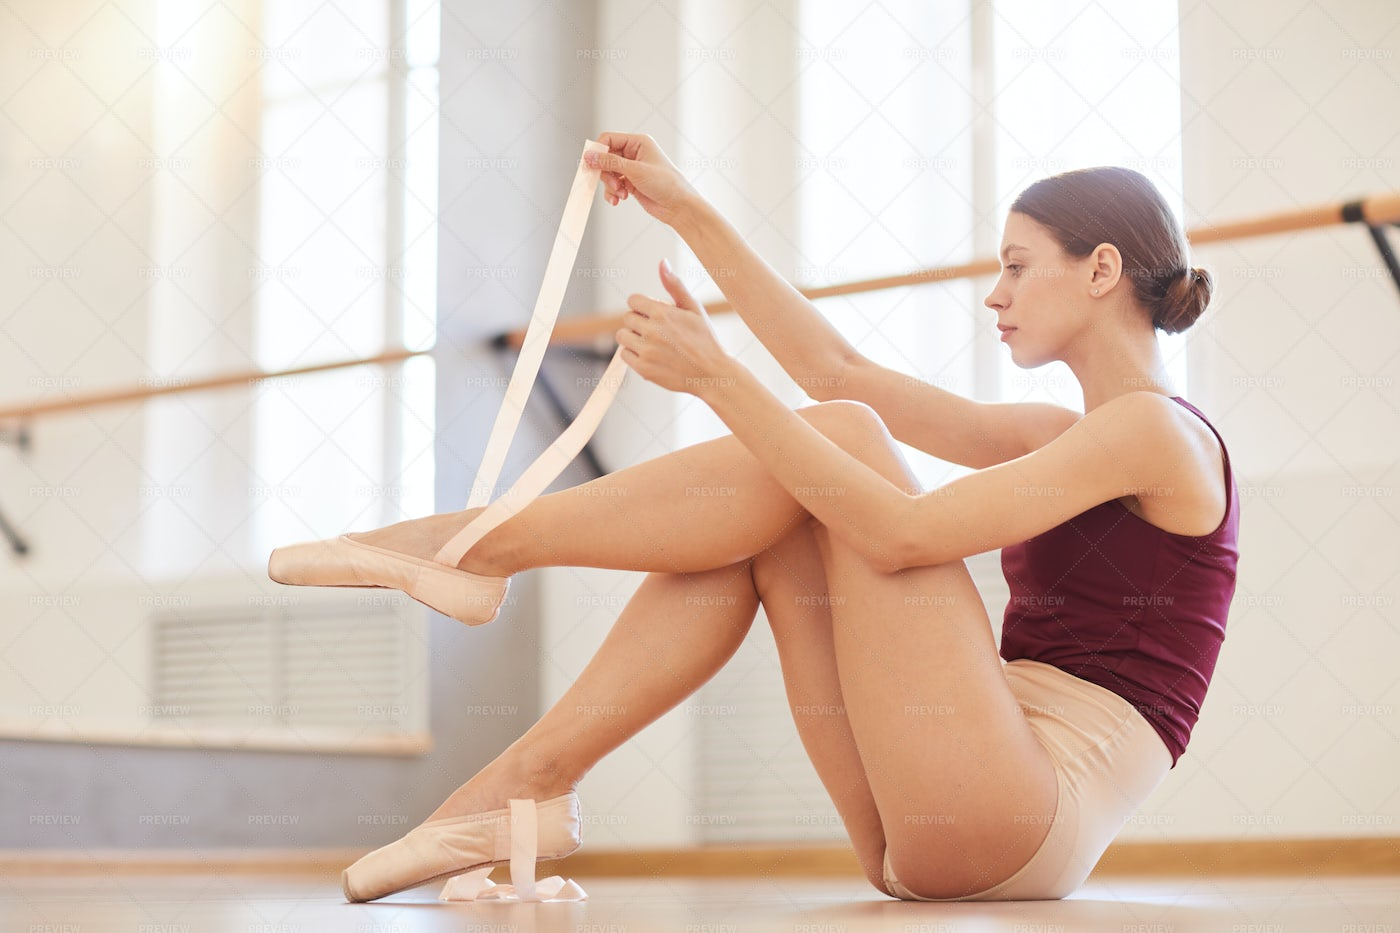 Wrapping Pointe Shoes Ribbon Around...: Stock Photos